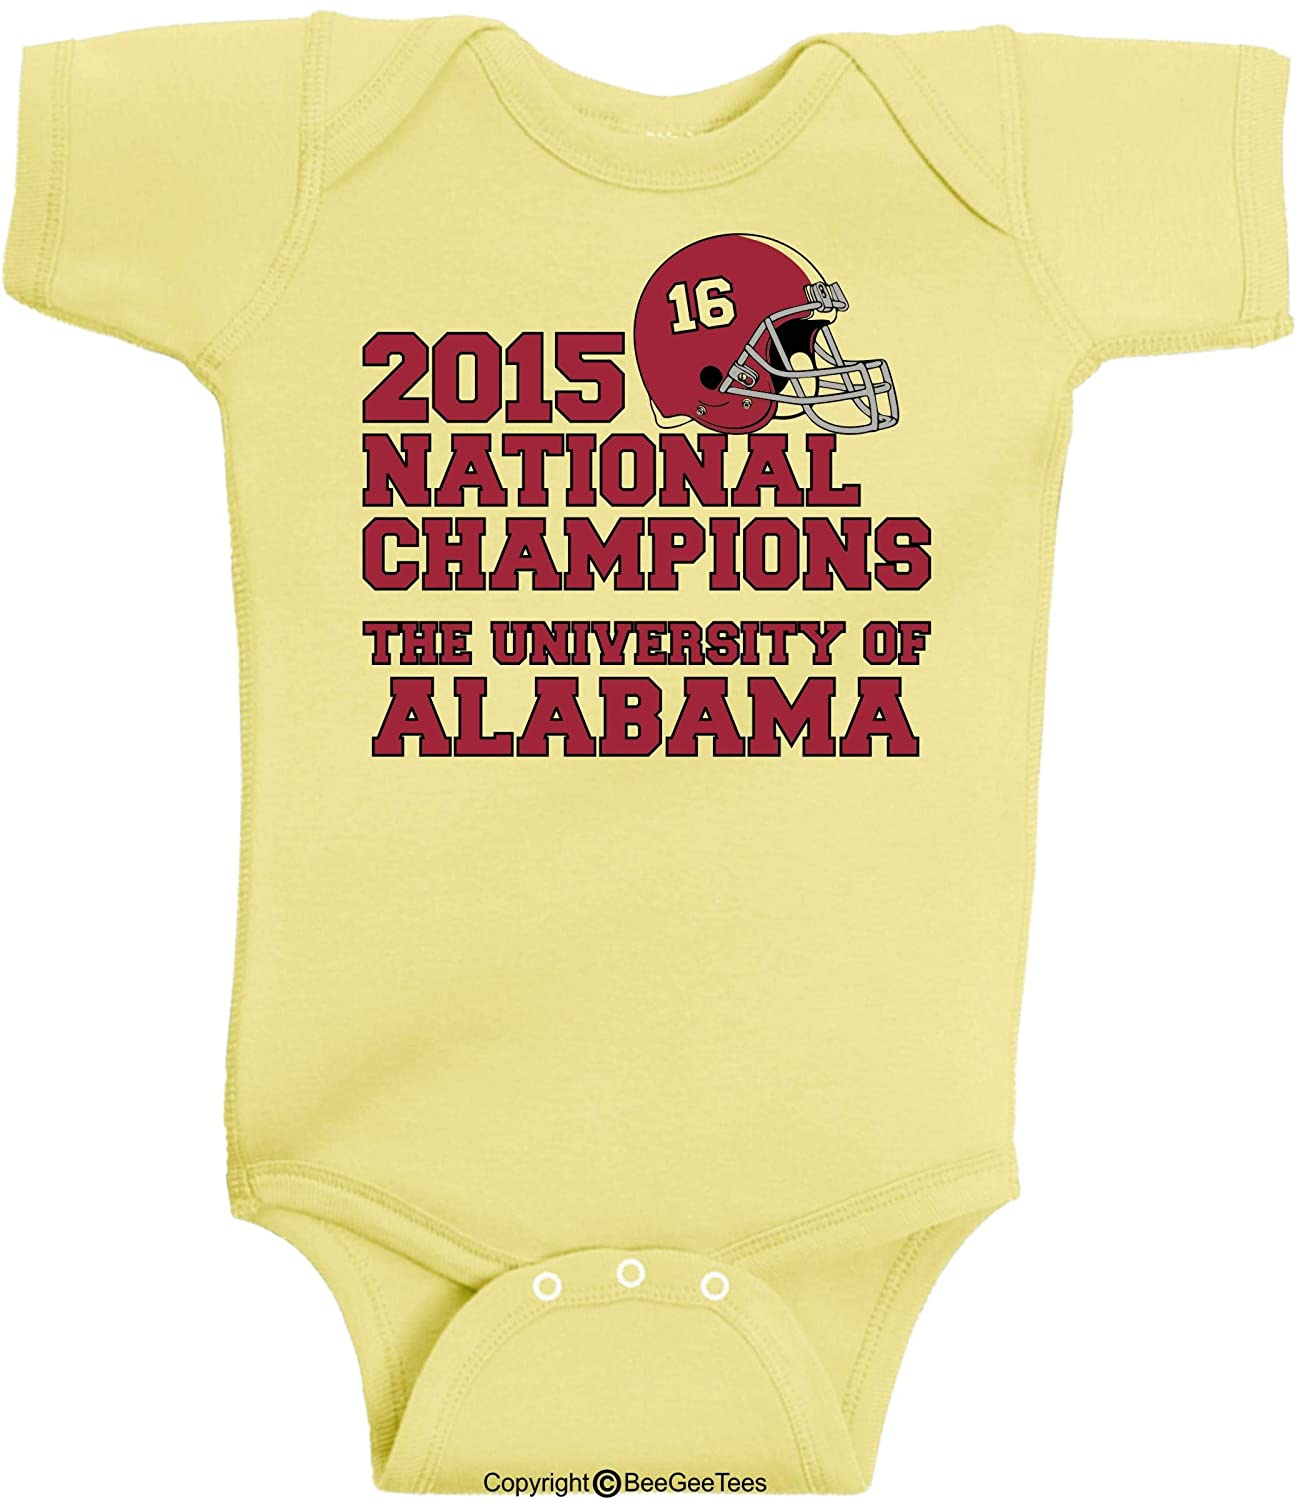 The University of Alabama 2015 National Champions Onesie by BeeGeeTees 24 Months, Red